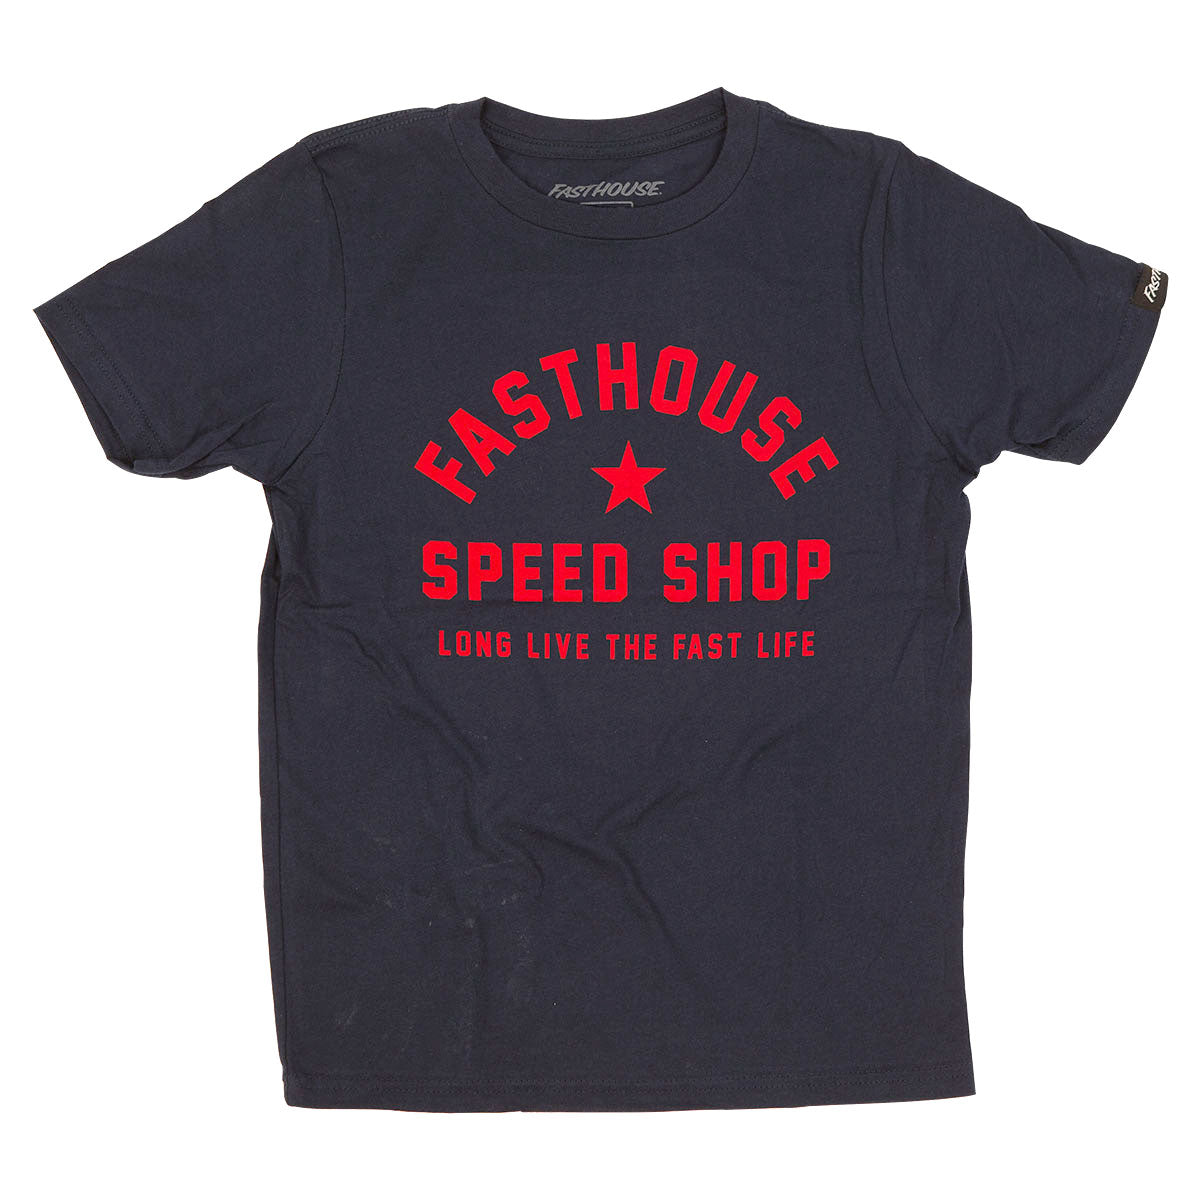 Fasthouse - Too Easy Youth Tee - Navy